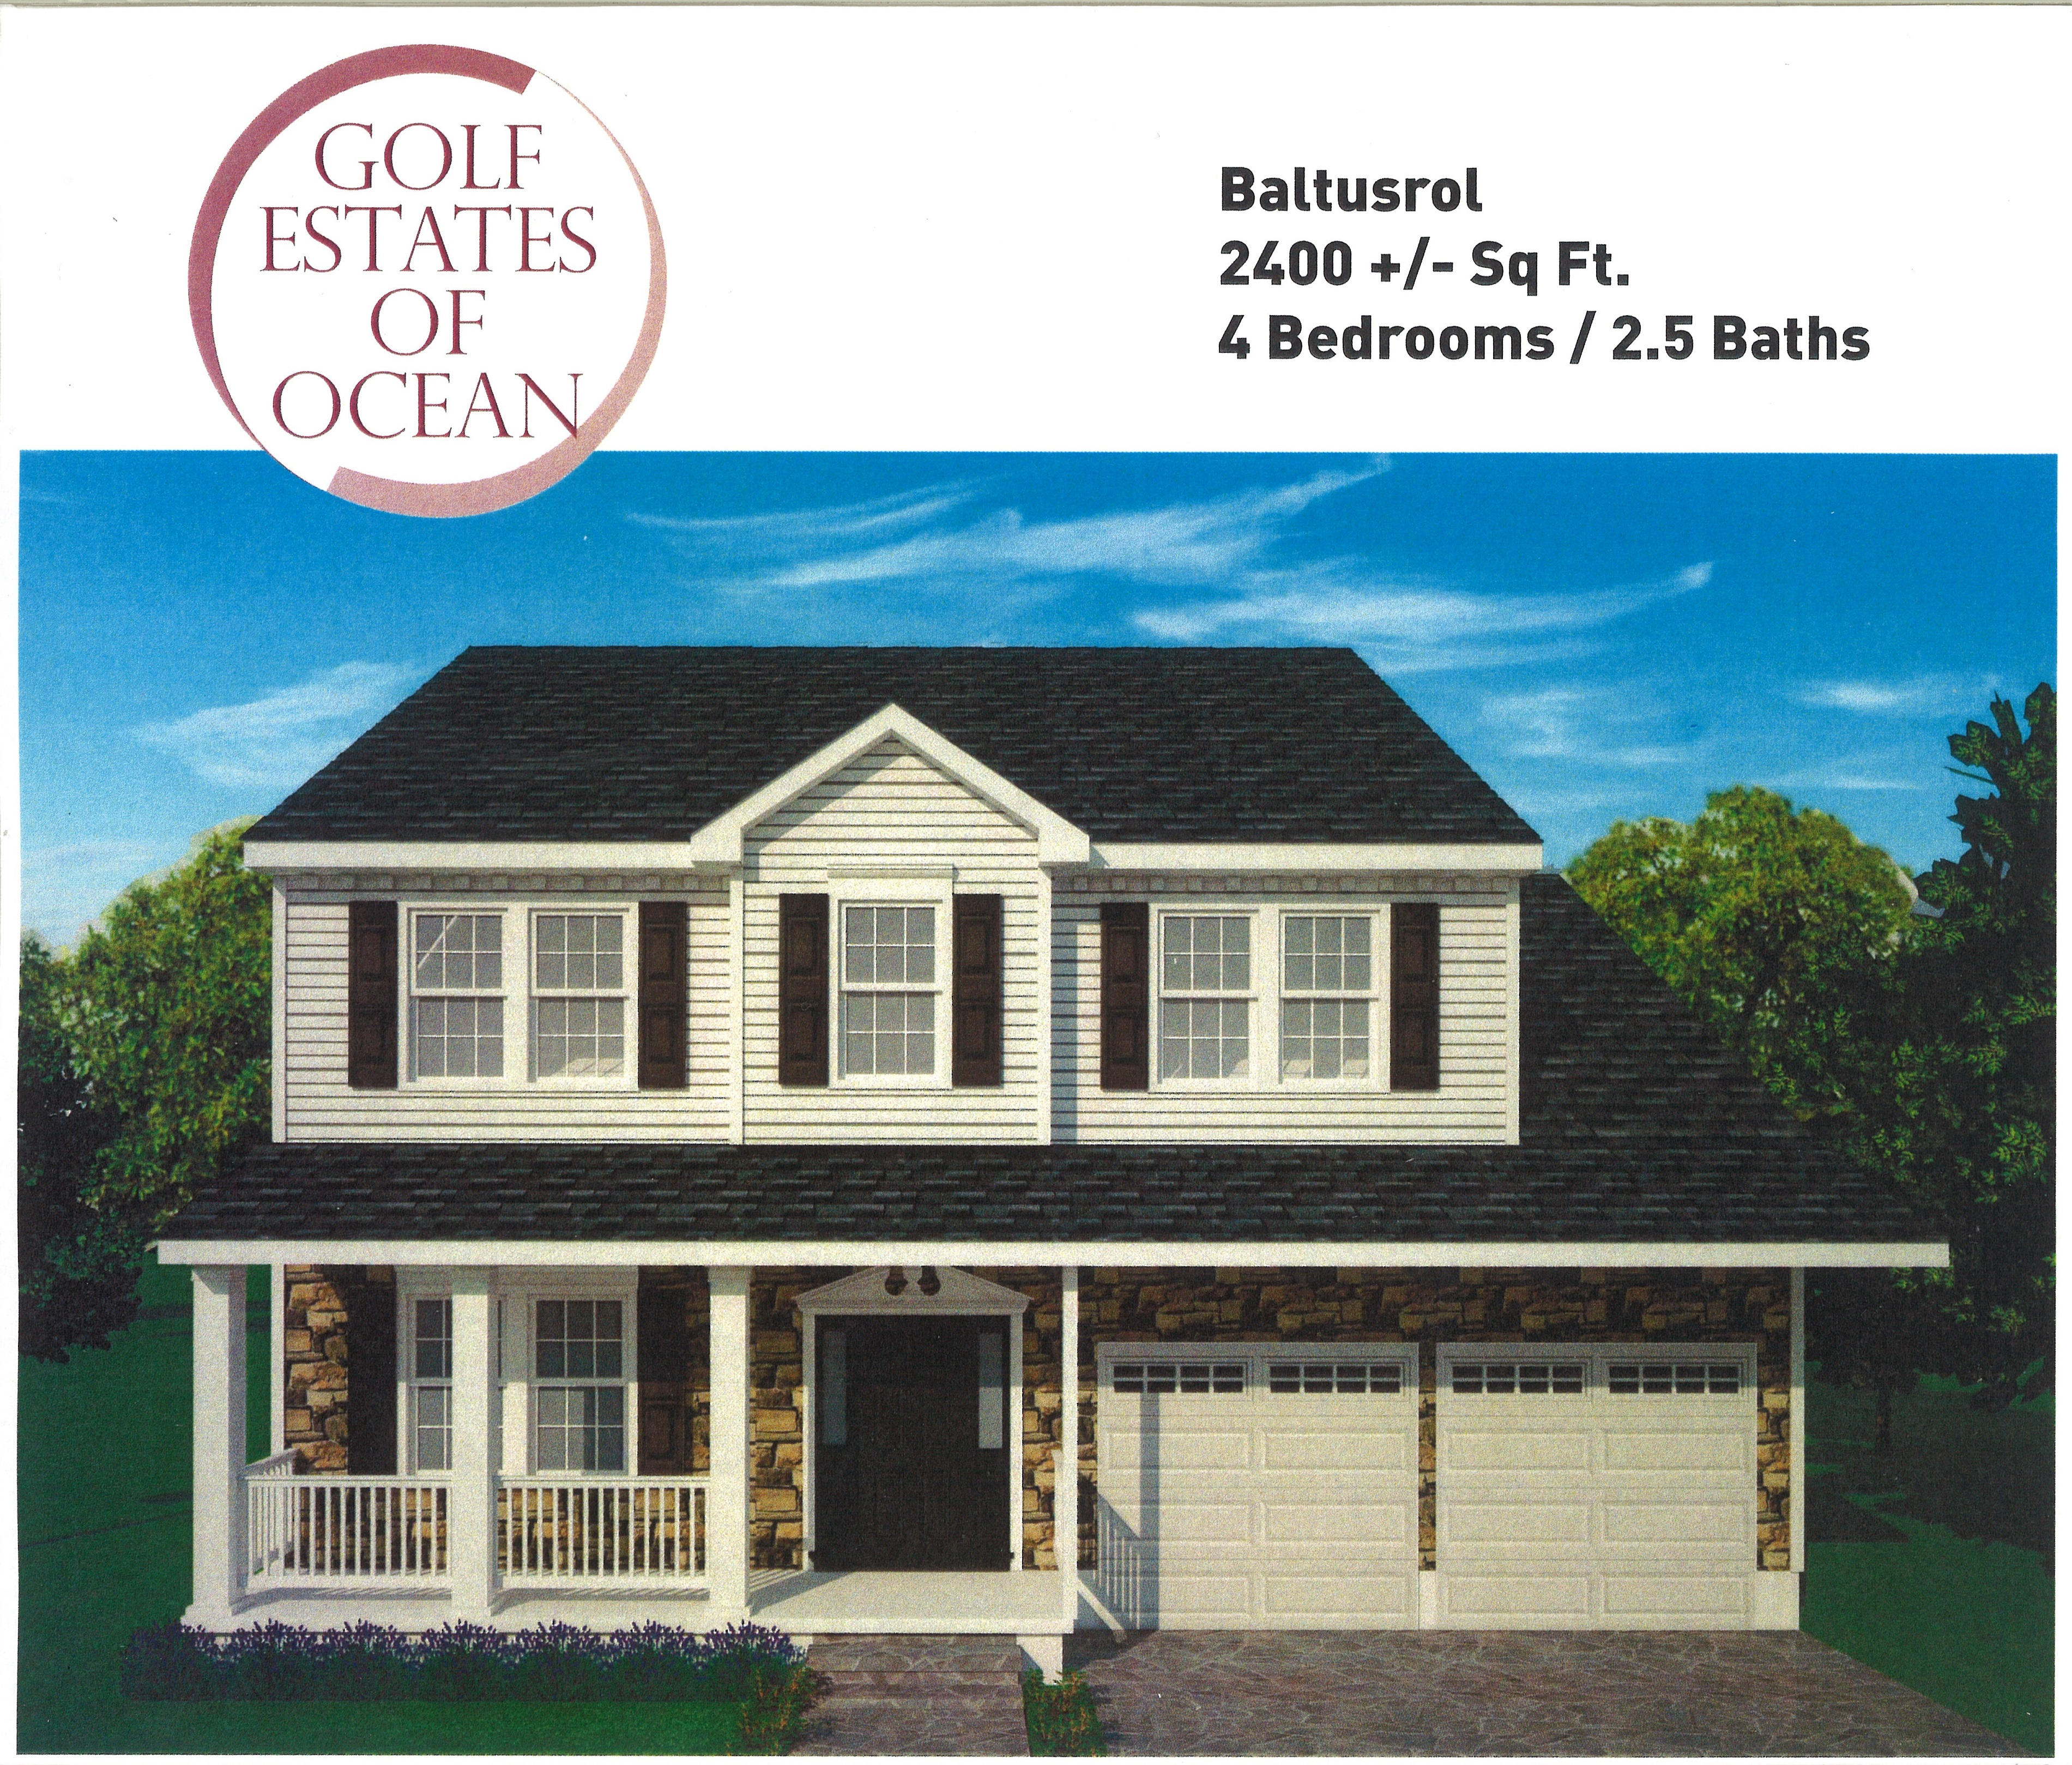 The Baltusrol model has approximately 2400 SF and 4 bedrooms and 2.5 baths.